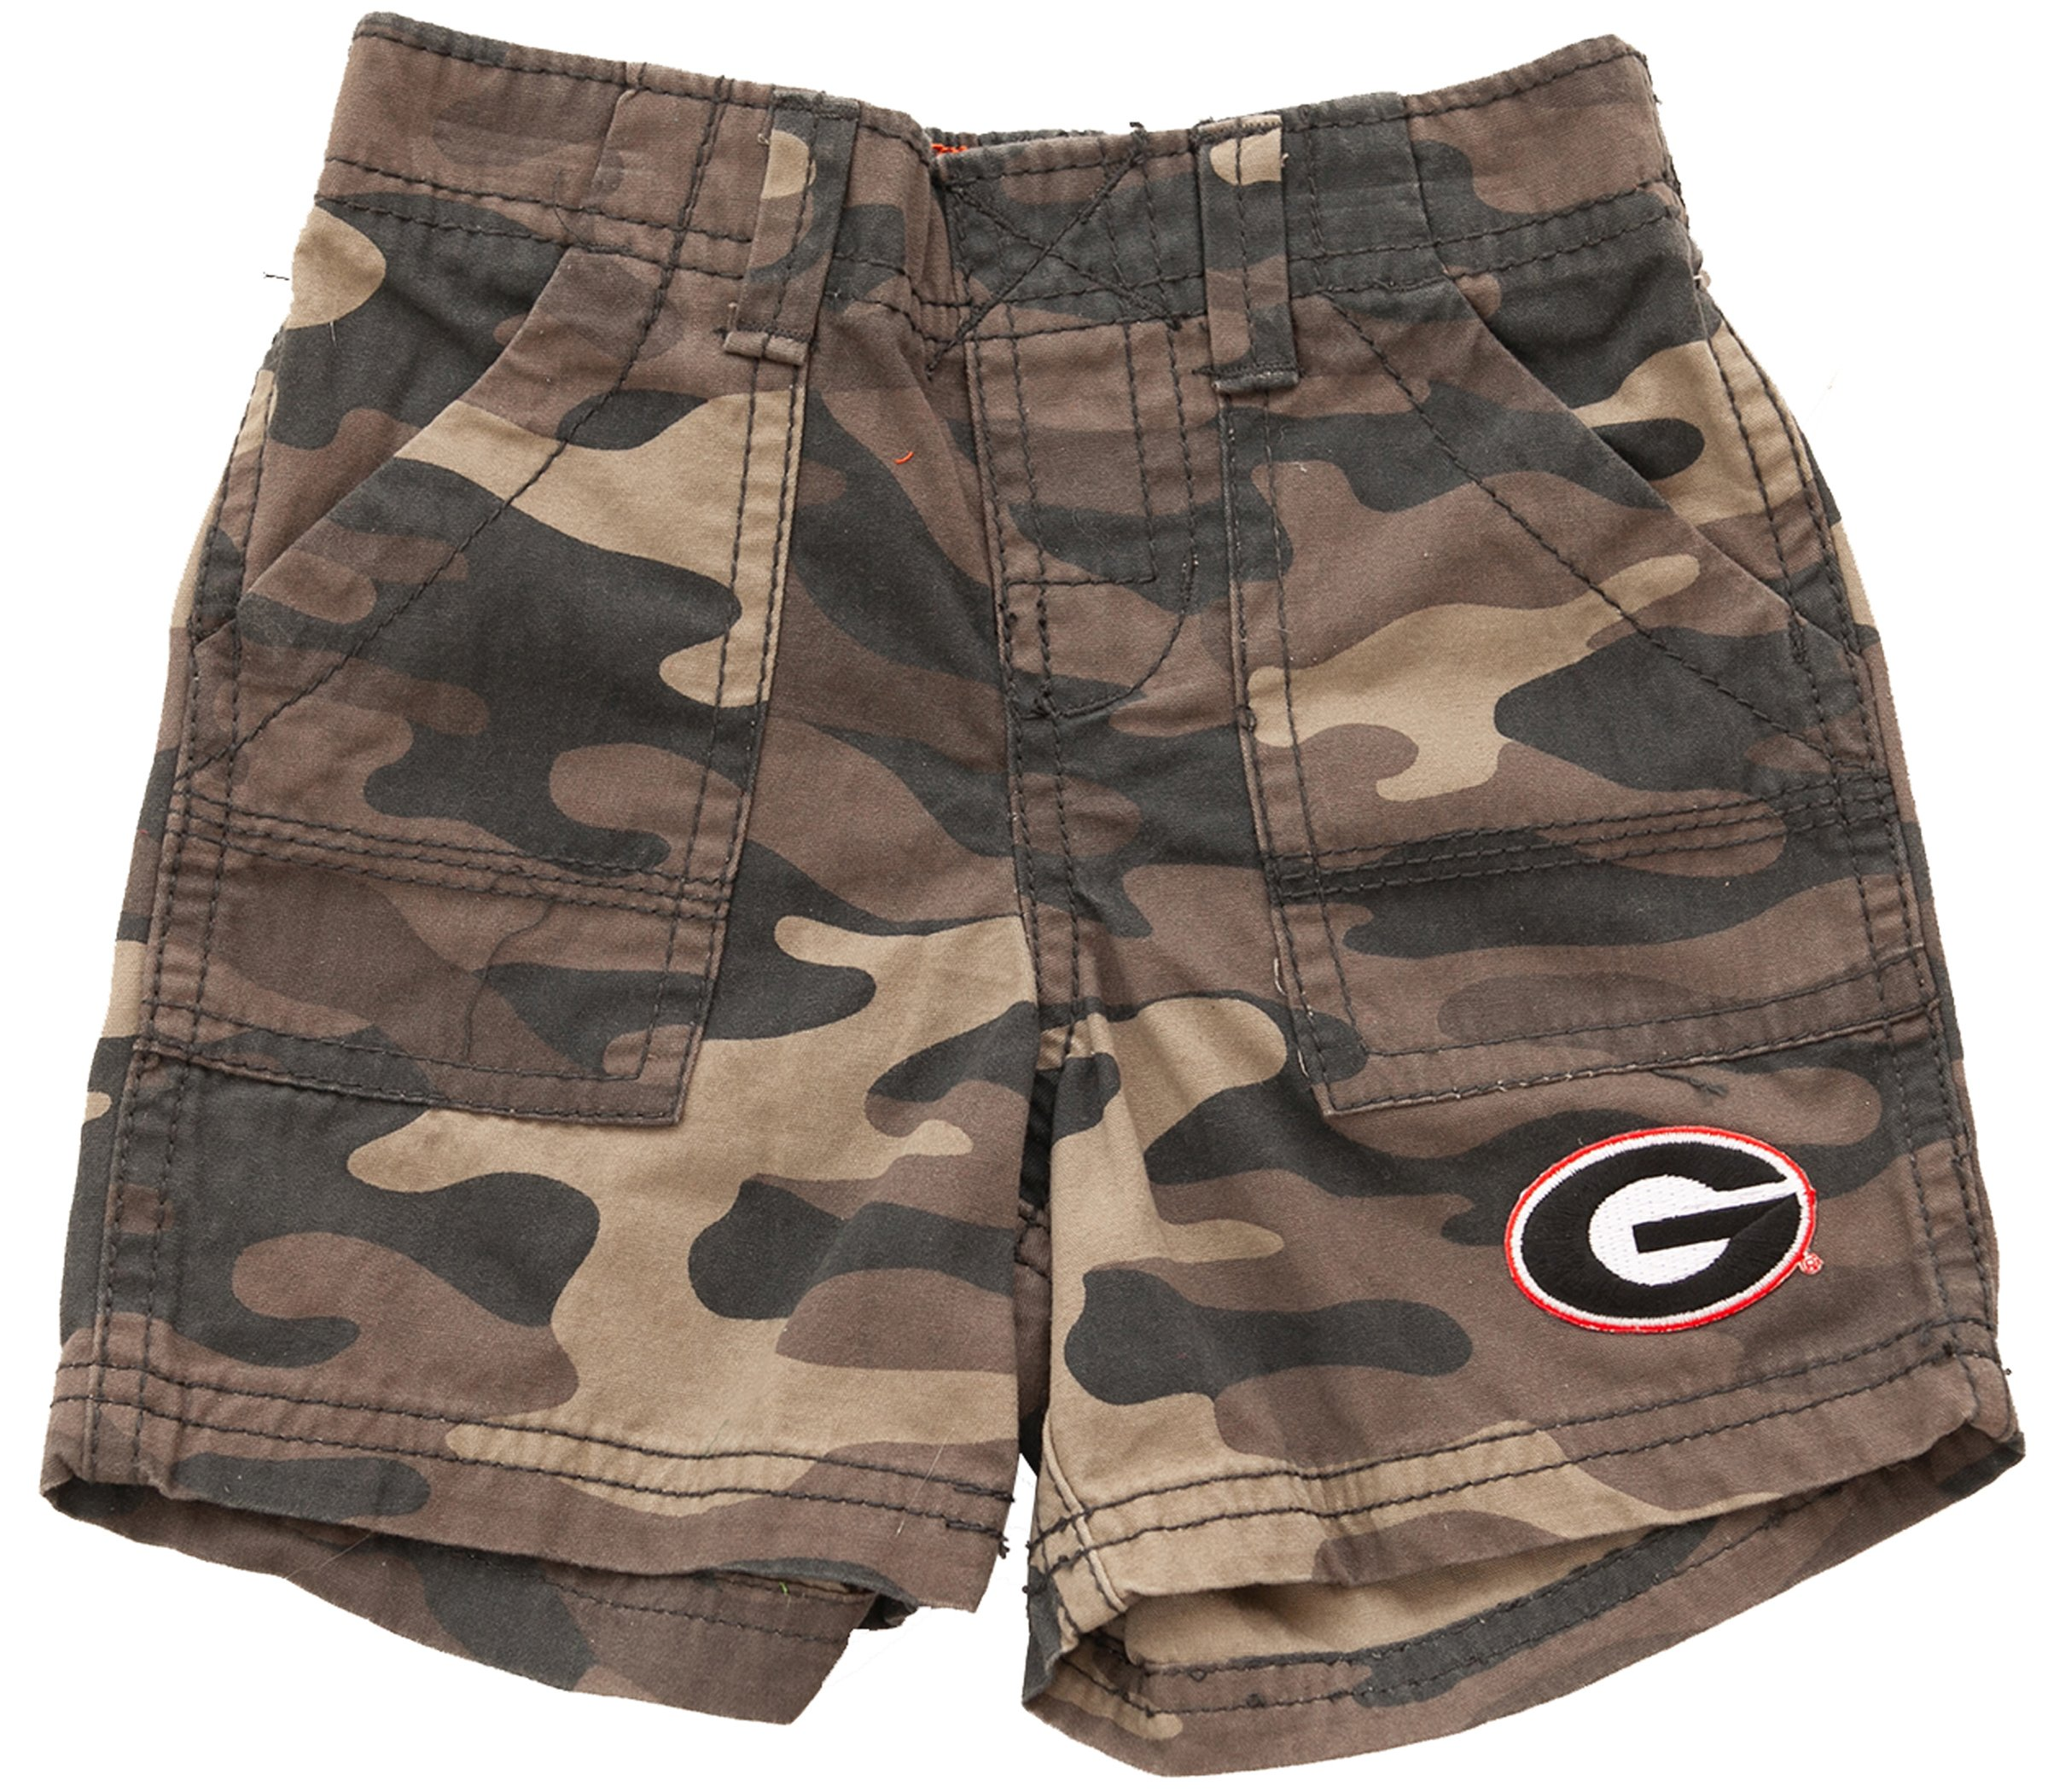 Georgia Bulldogs Camo Shorts 24 months